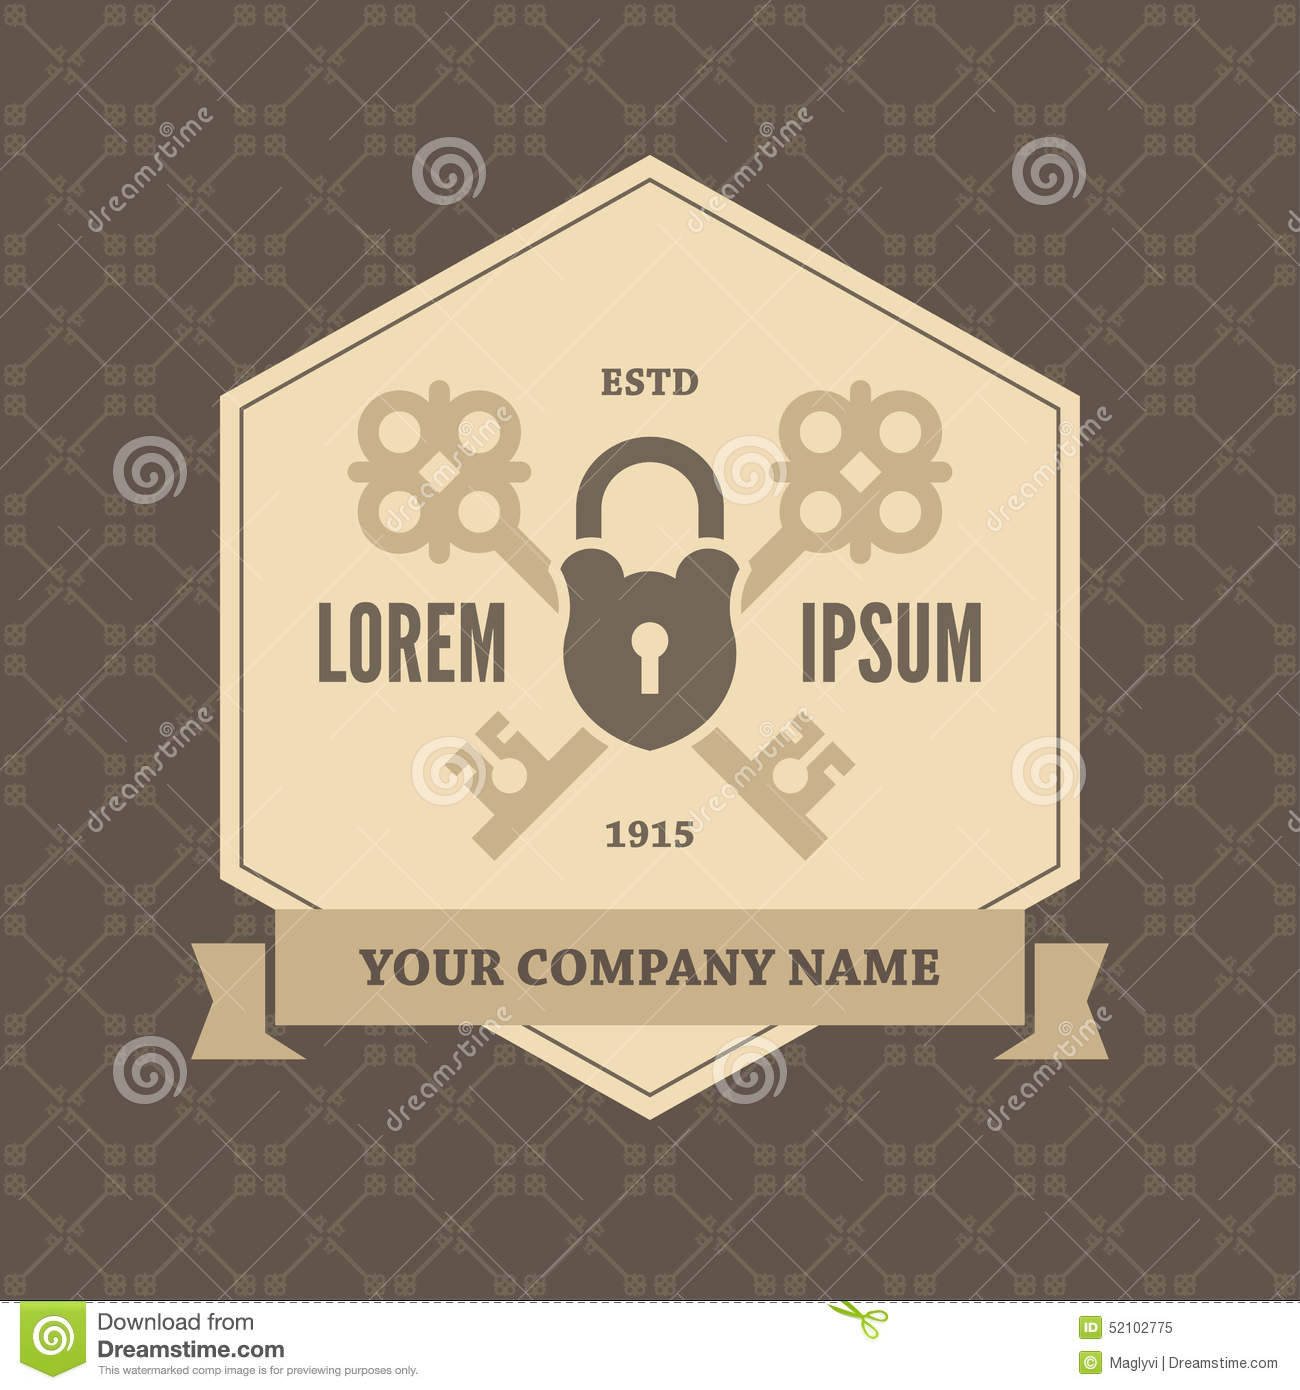 Poster design key - Background Banner Crossed Design Key Keys Lock Pattern Poster